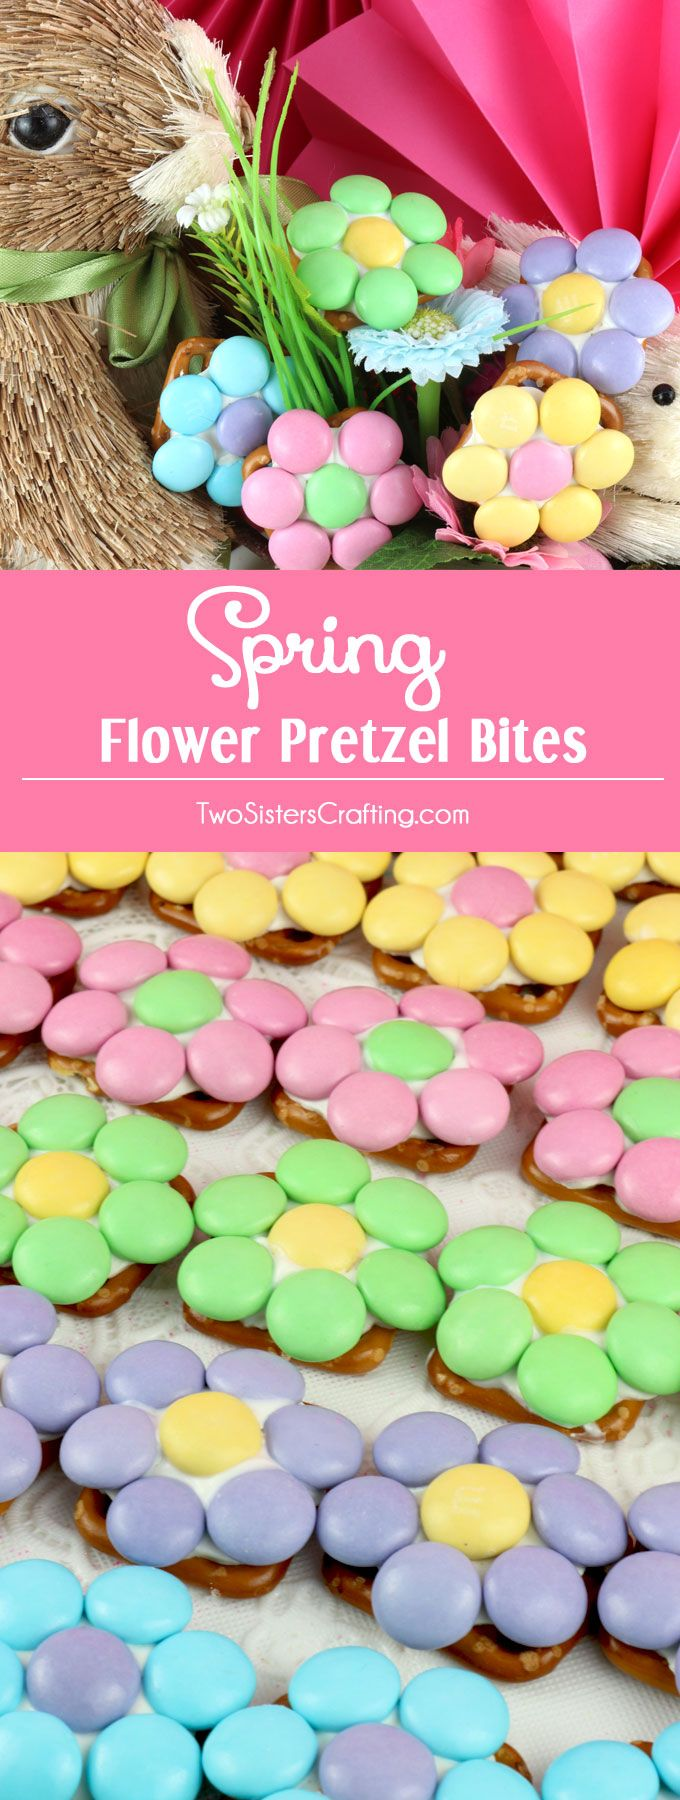 Easy to make Spring Flower Pretzel Bites. Sweet, salty, crunchy and delicious - what a great Easter Dessert.